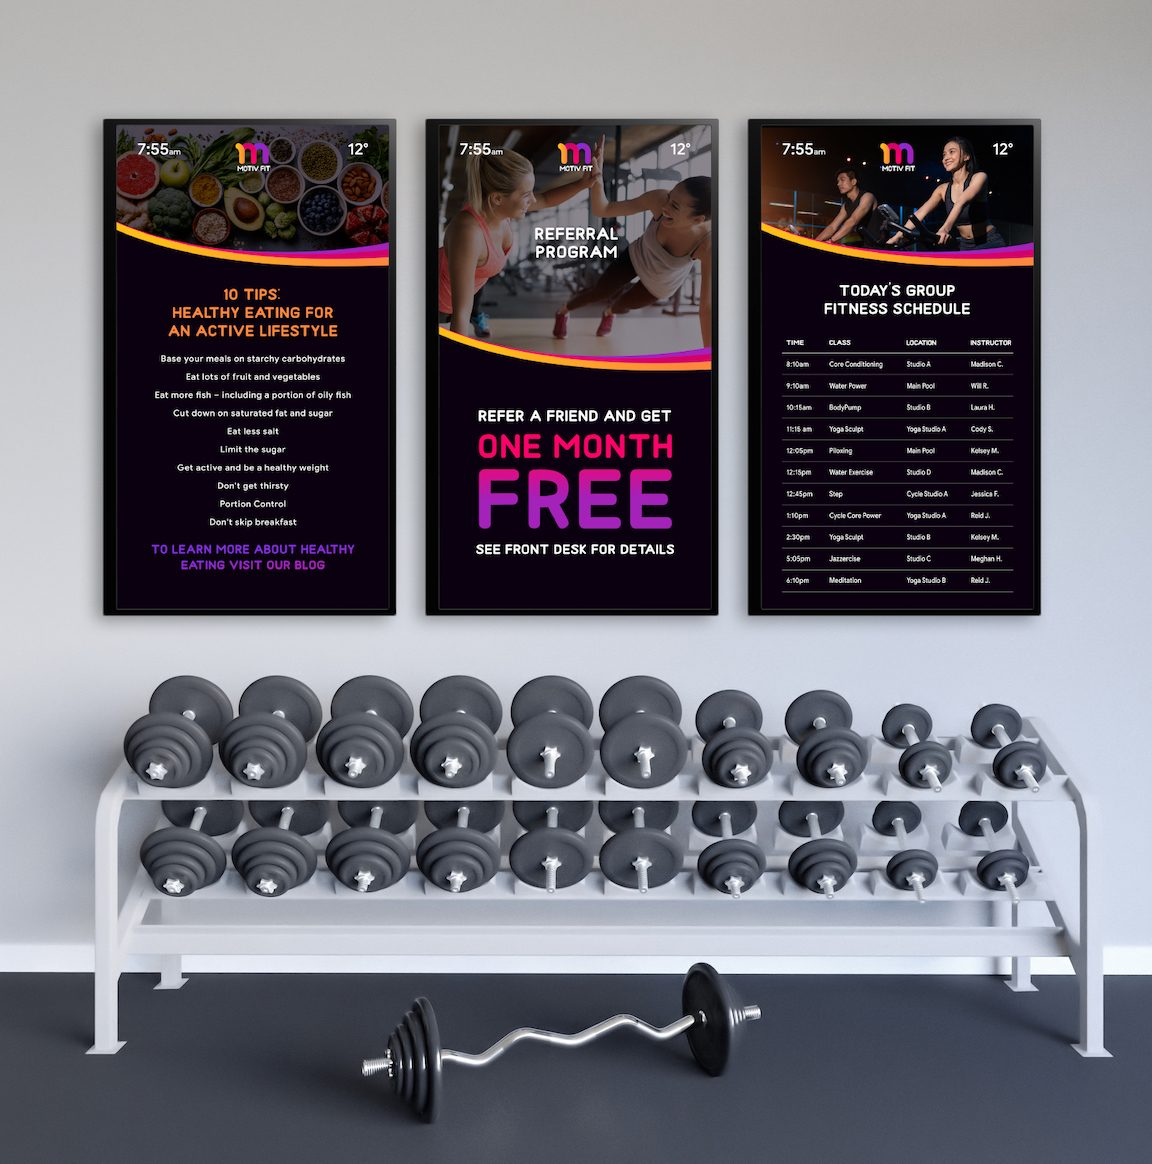 digital signage in gym made easy by Skykit